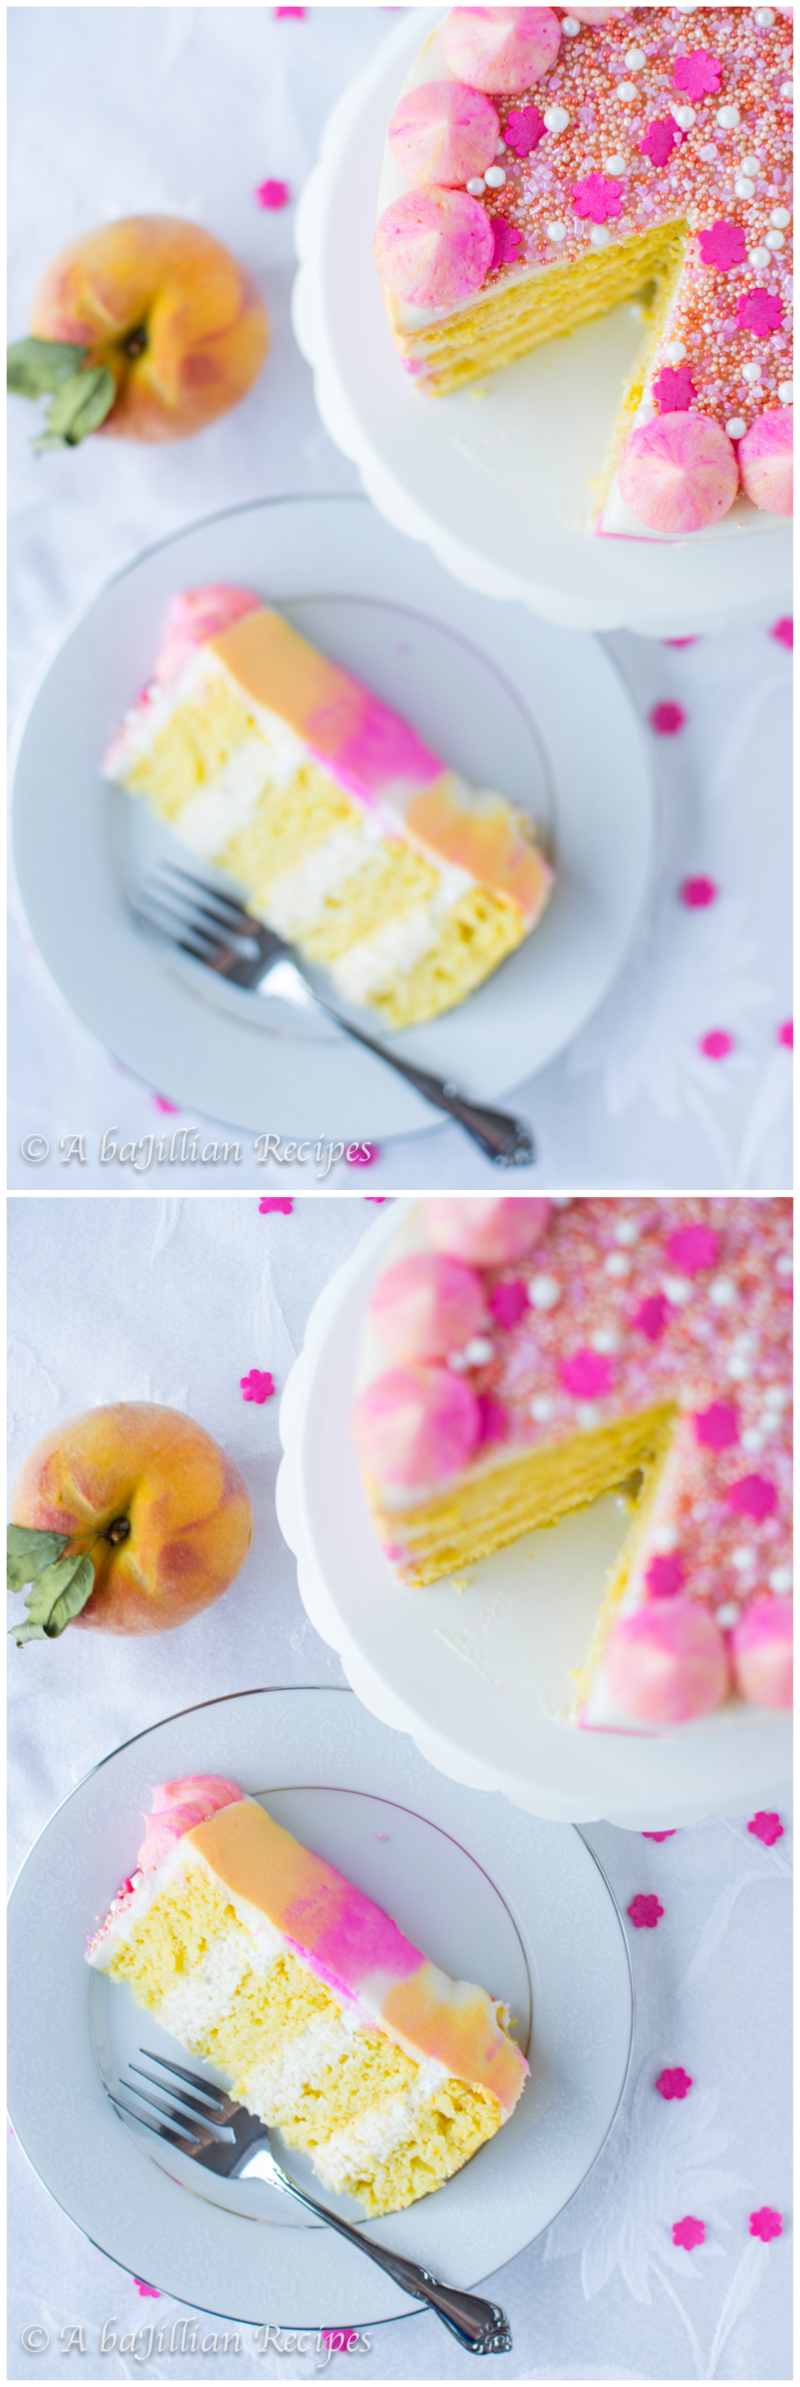 Peach Watercolor Cake | A baJillian Recipes2